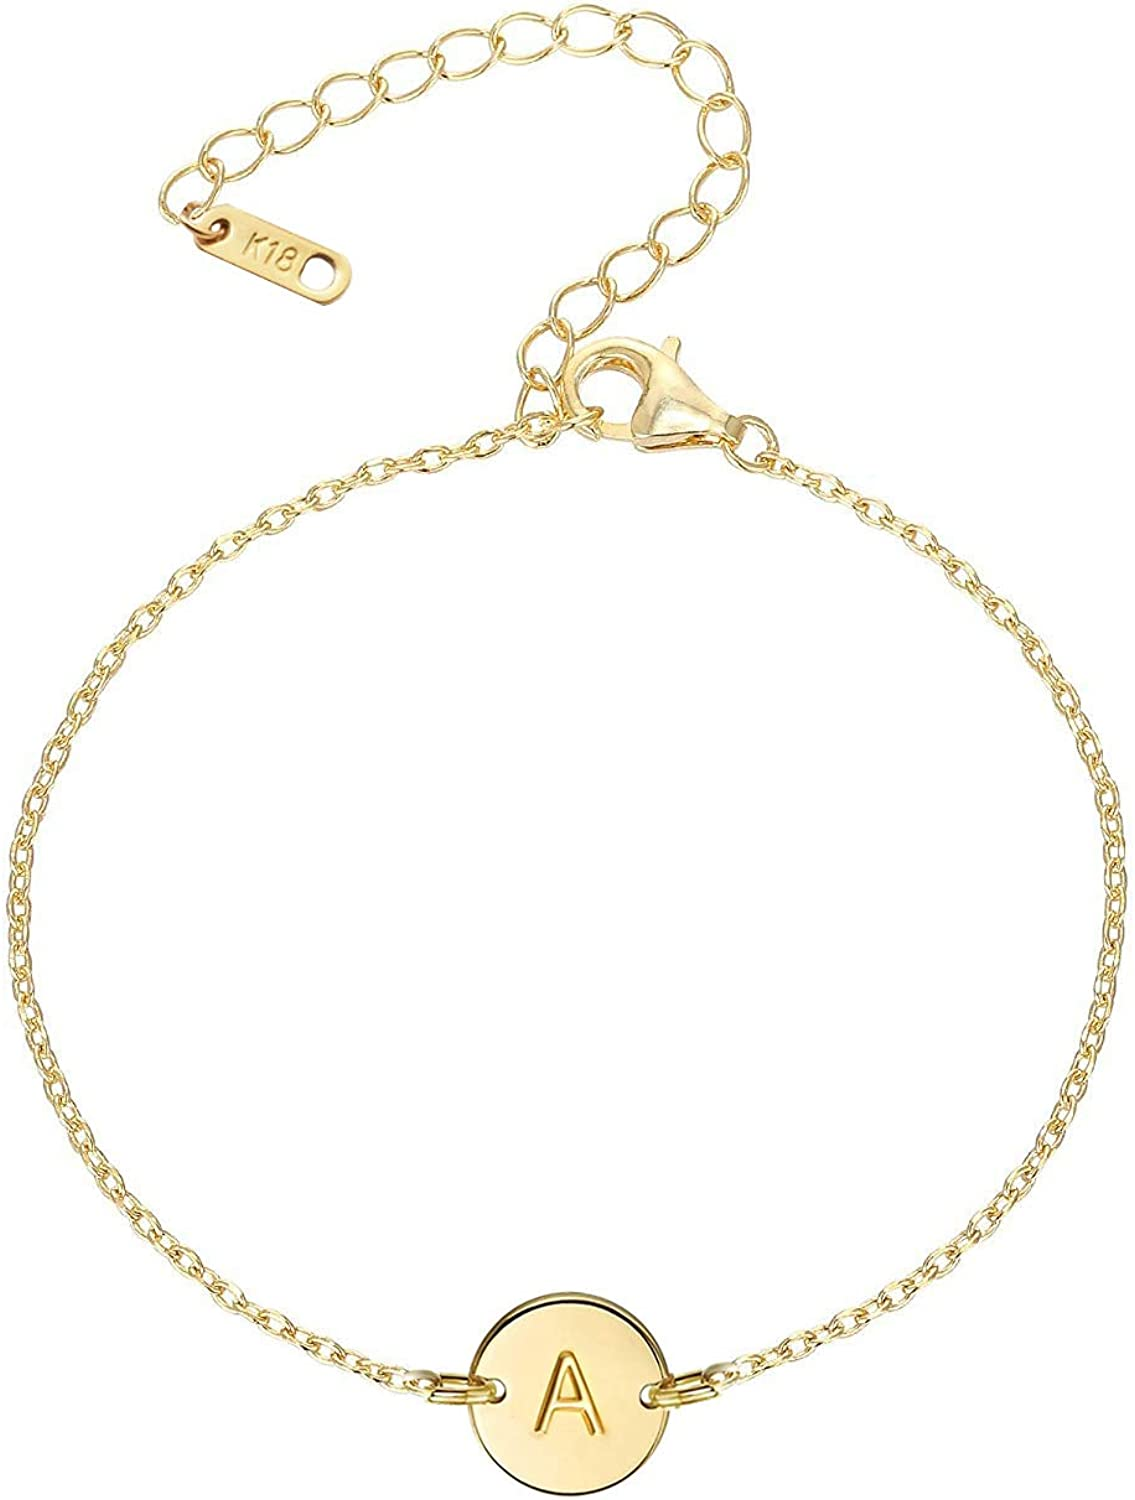 Personalized Initial Disc Bracelet Dainty Gold Initial Bracelet Couple Jewelry Simple Stamped Disc Jewelry Custom Initial Tag Bracelet